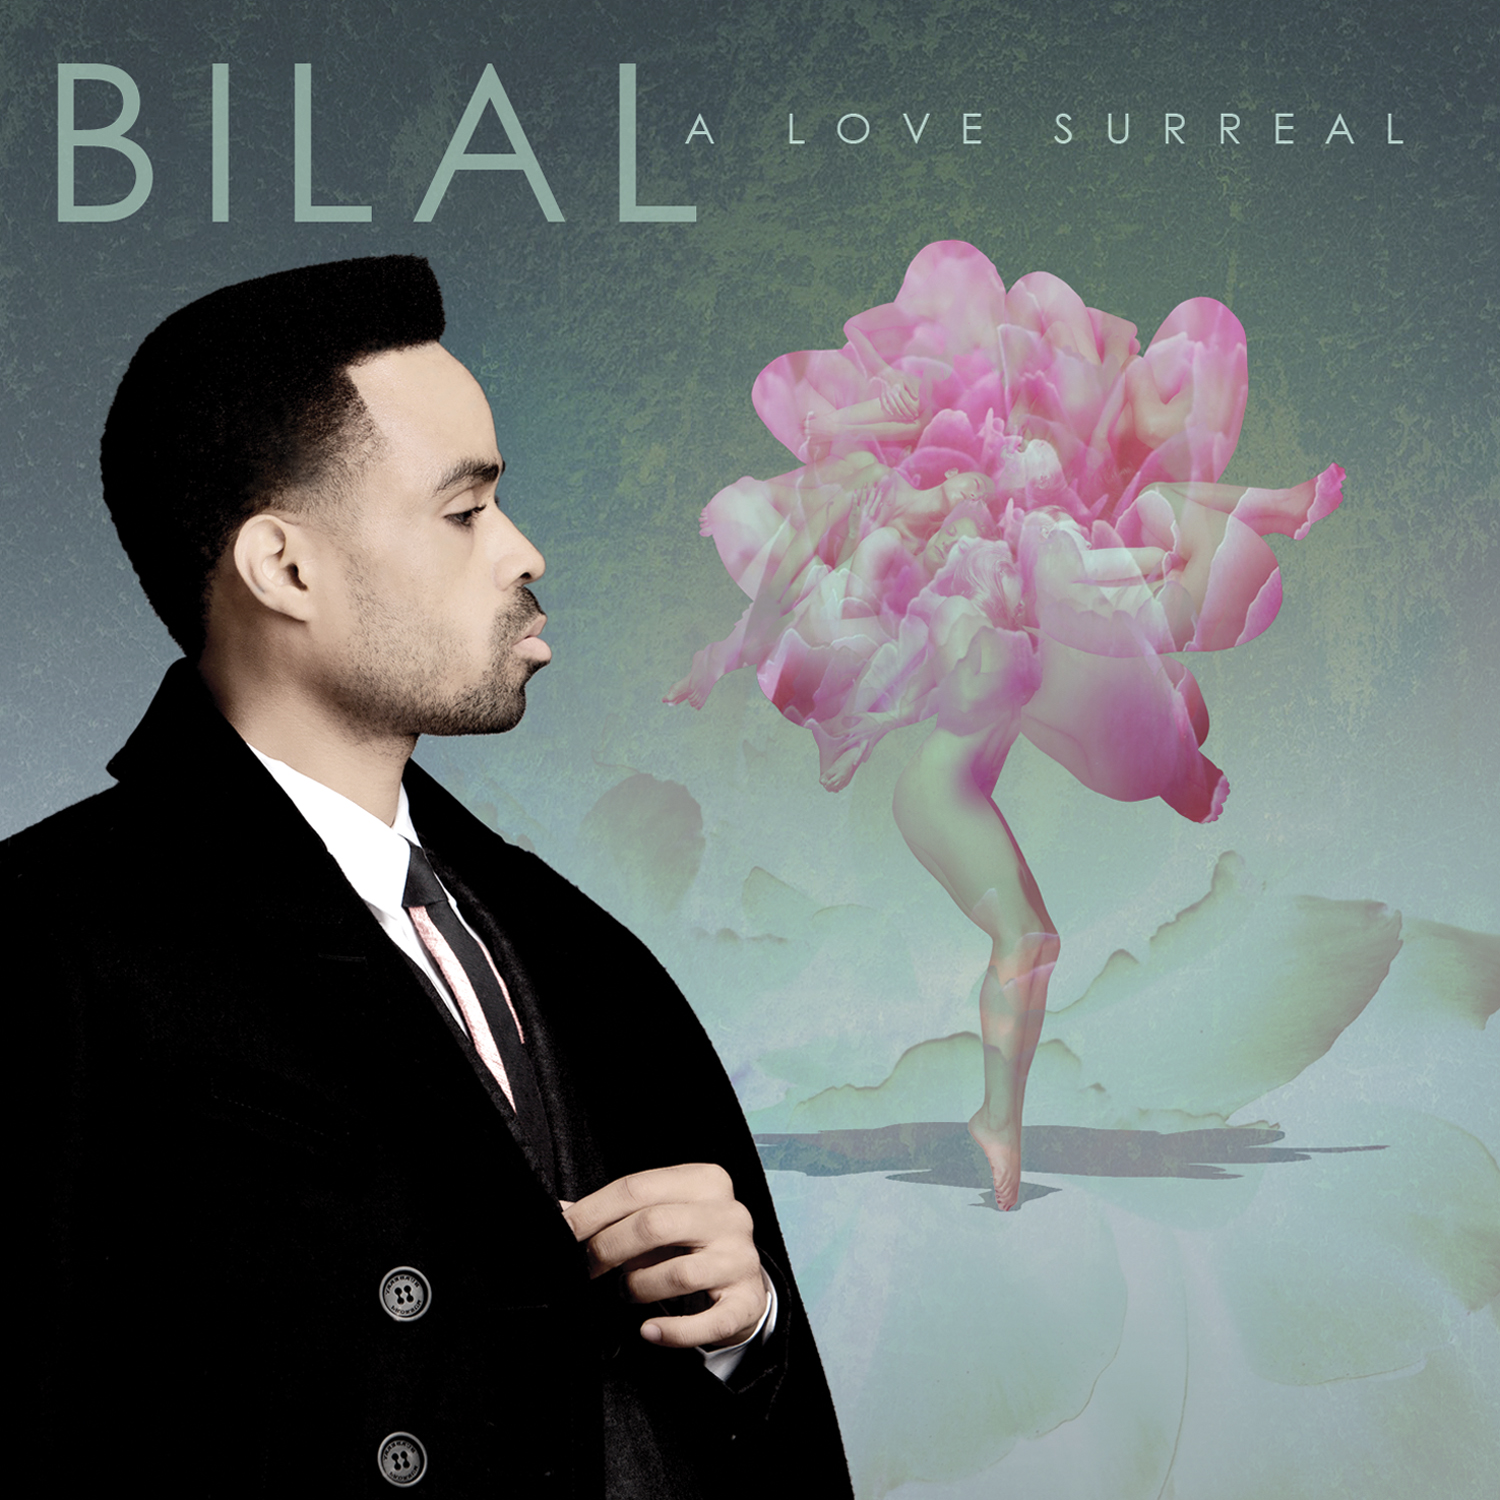 Bilal - A Love Surreal (Cover)